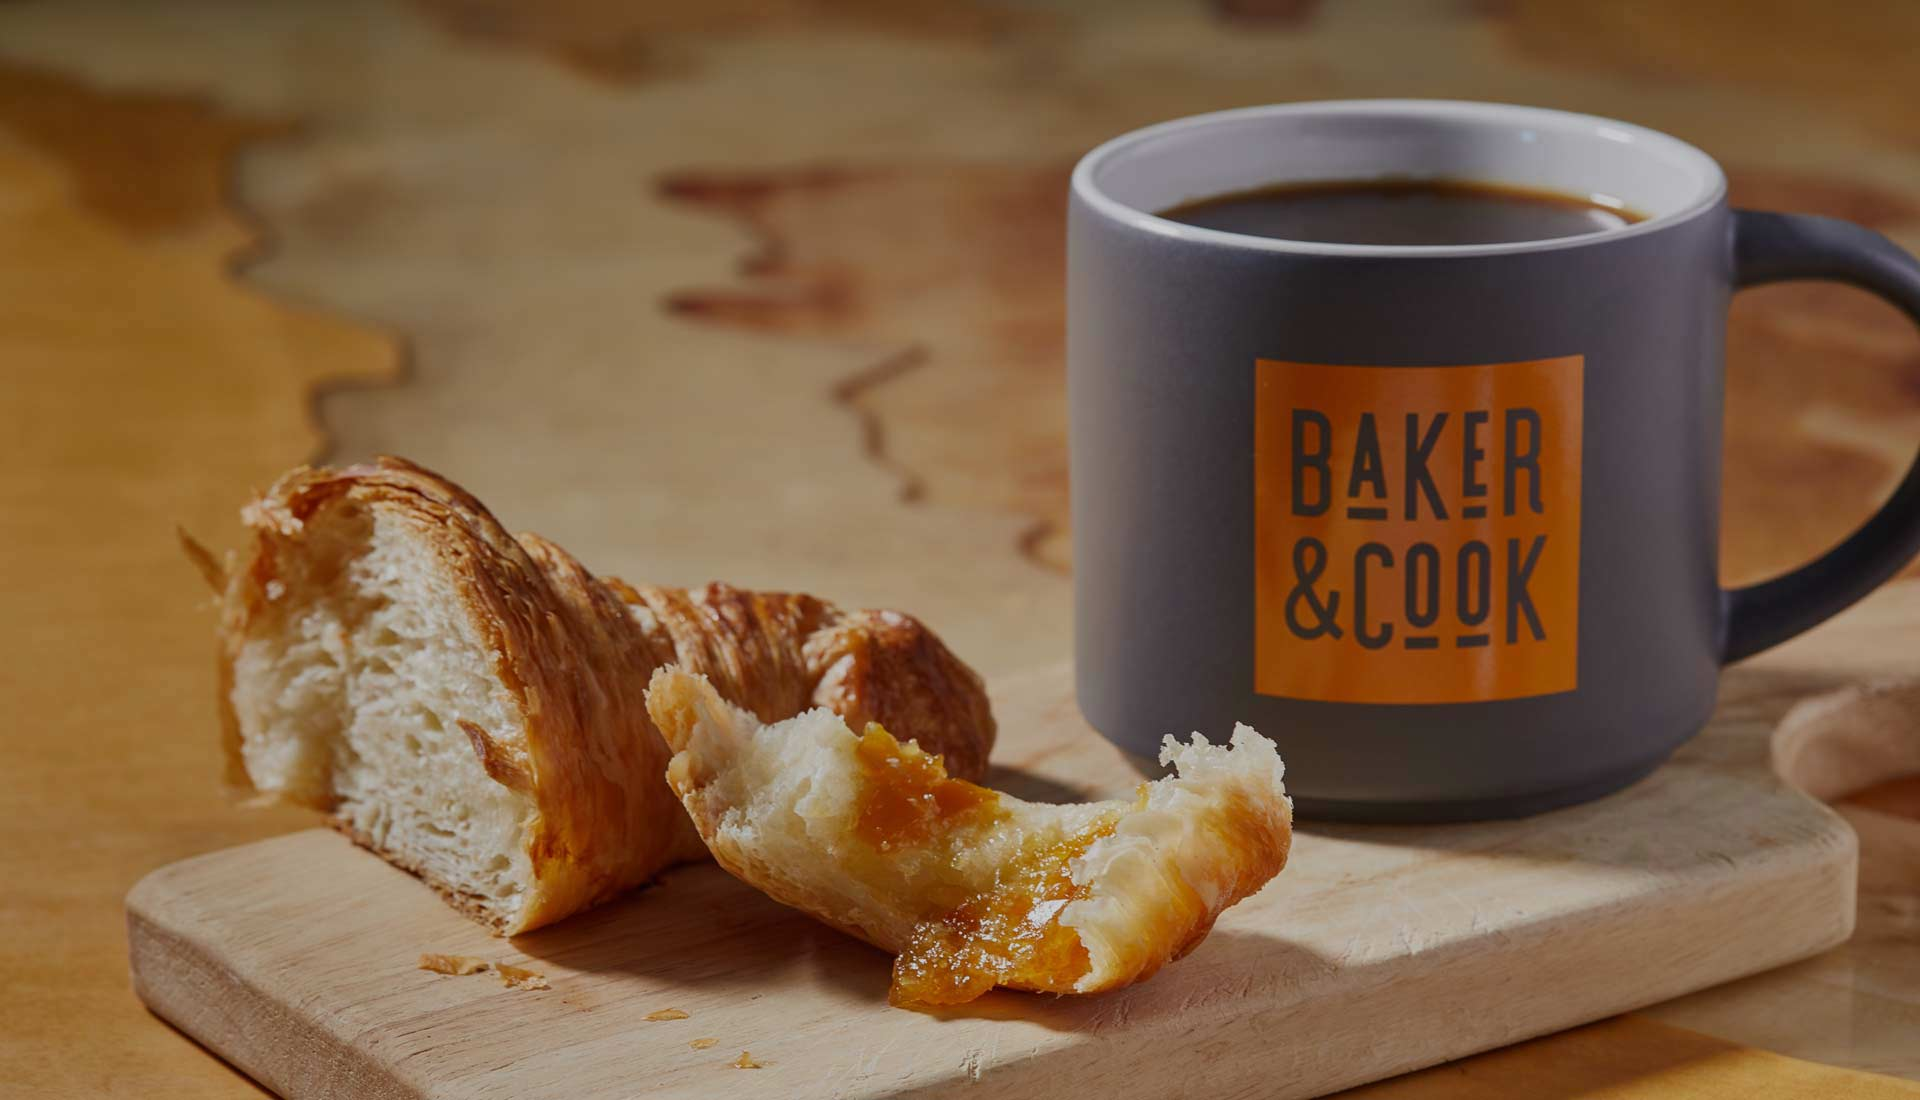 croissant next to a cup of coffee from Baker & Cook